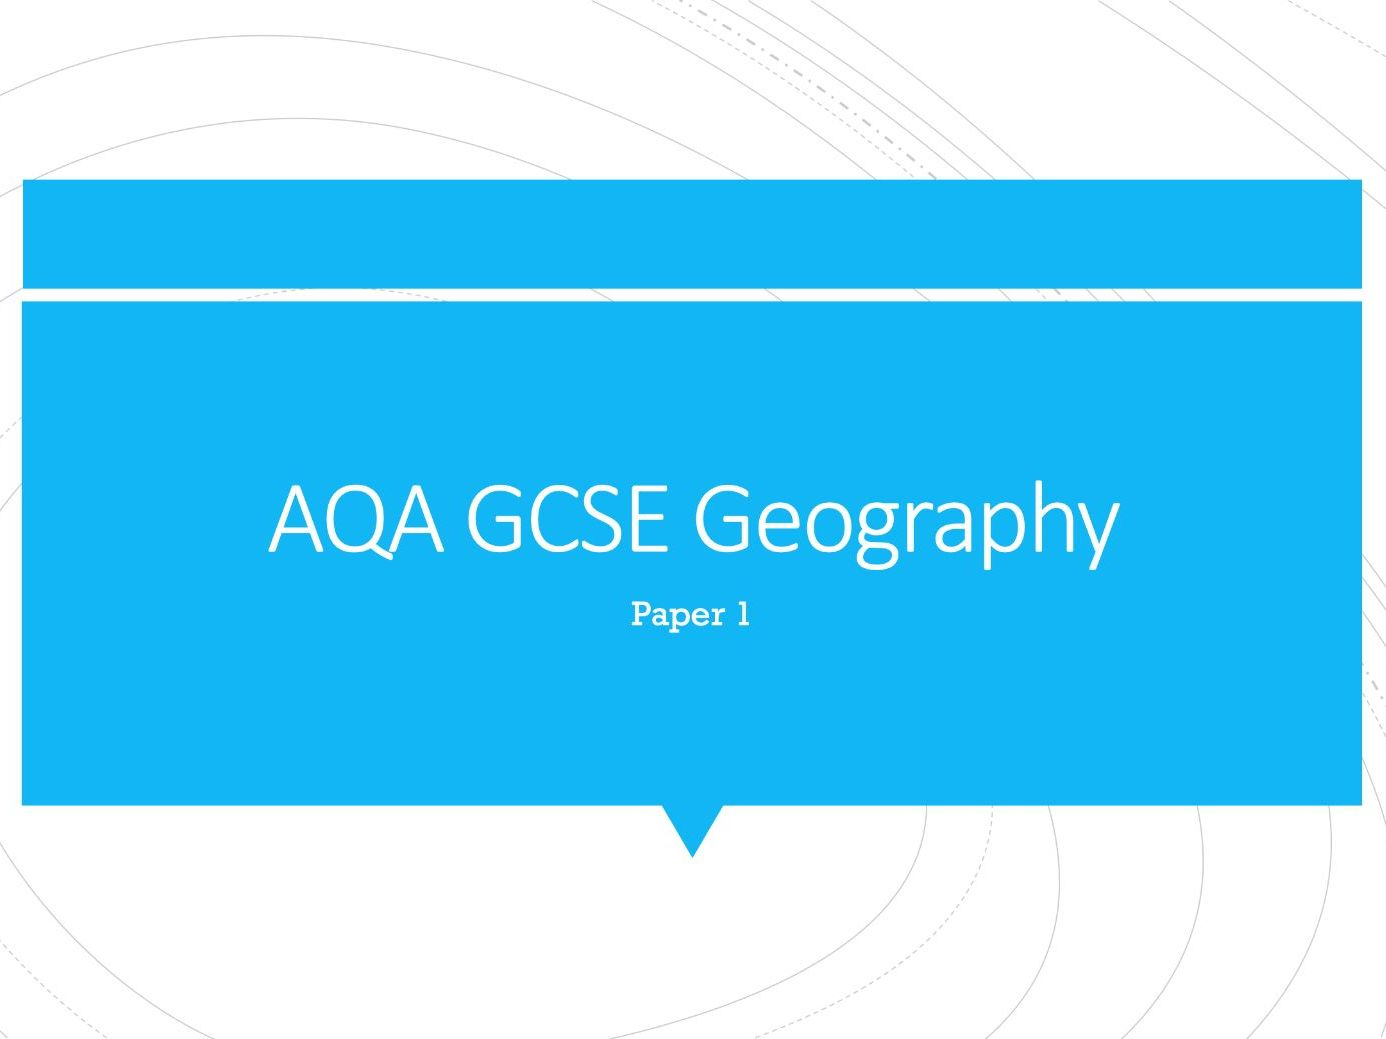 Geography AQA GCSE PowerPoints - Paper 1